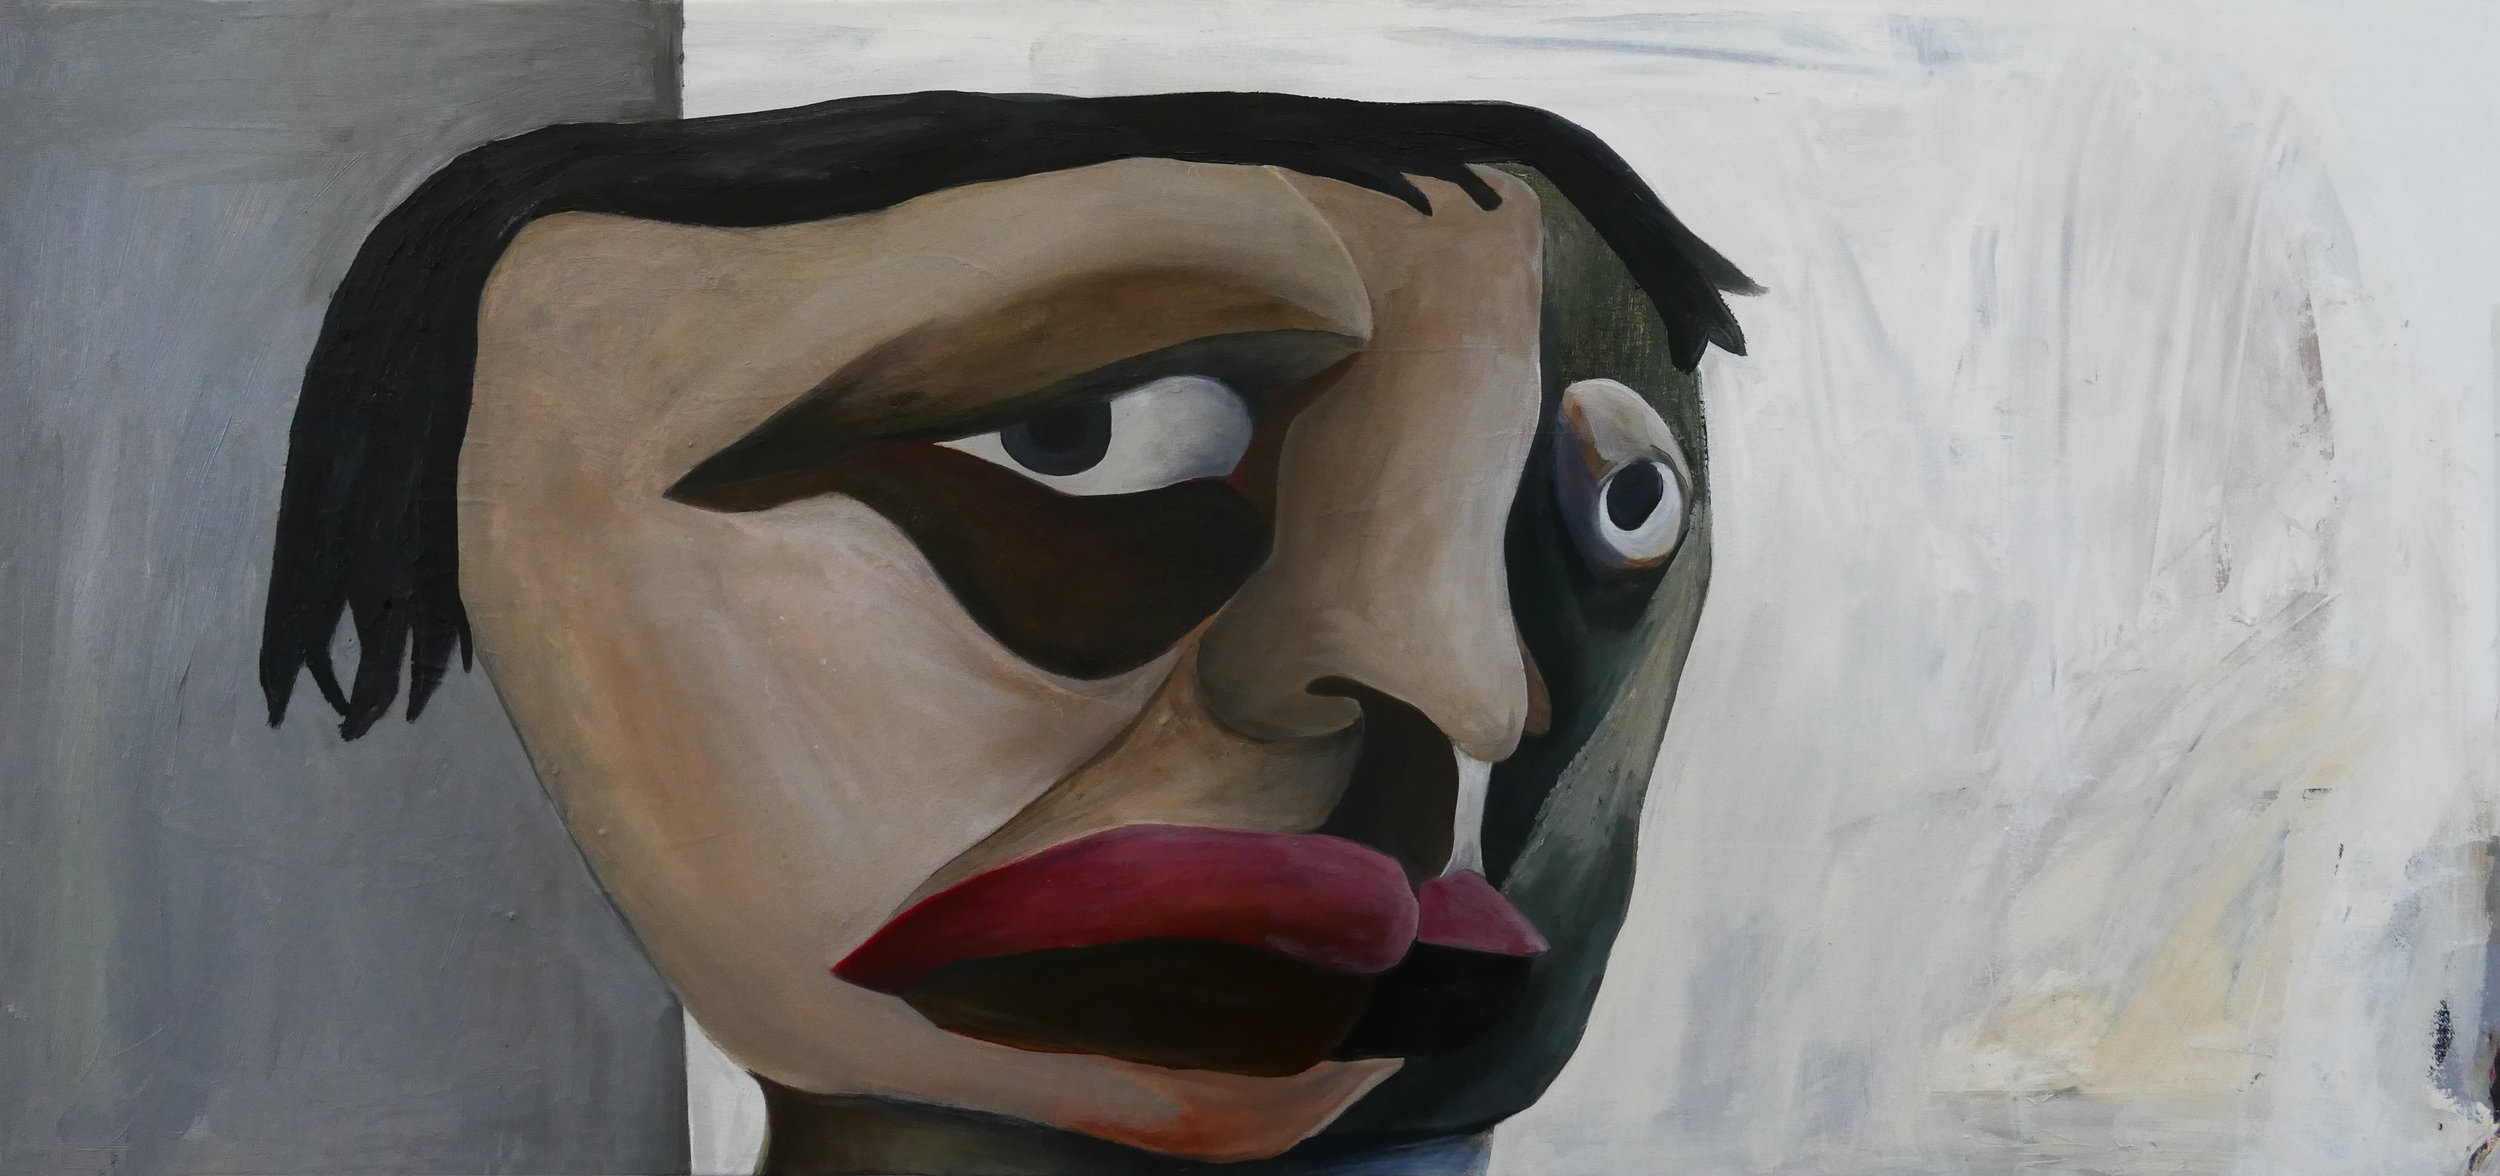 Oil on canvas, 40x19 in., 2019.